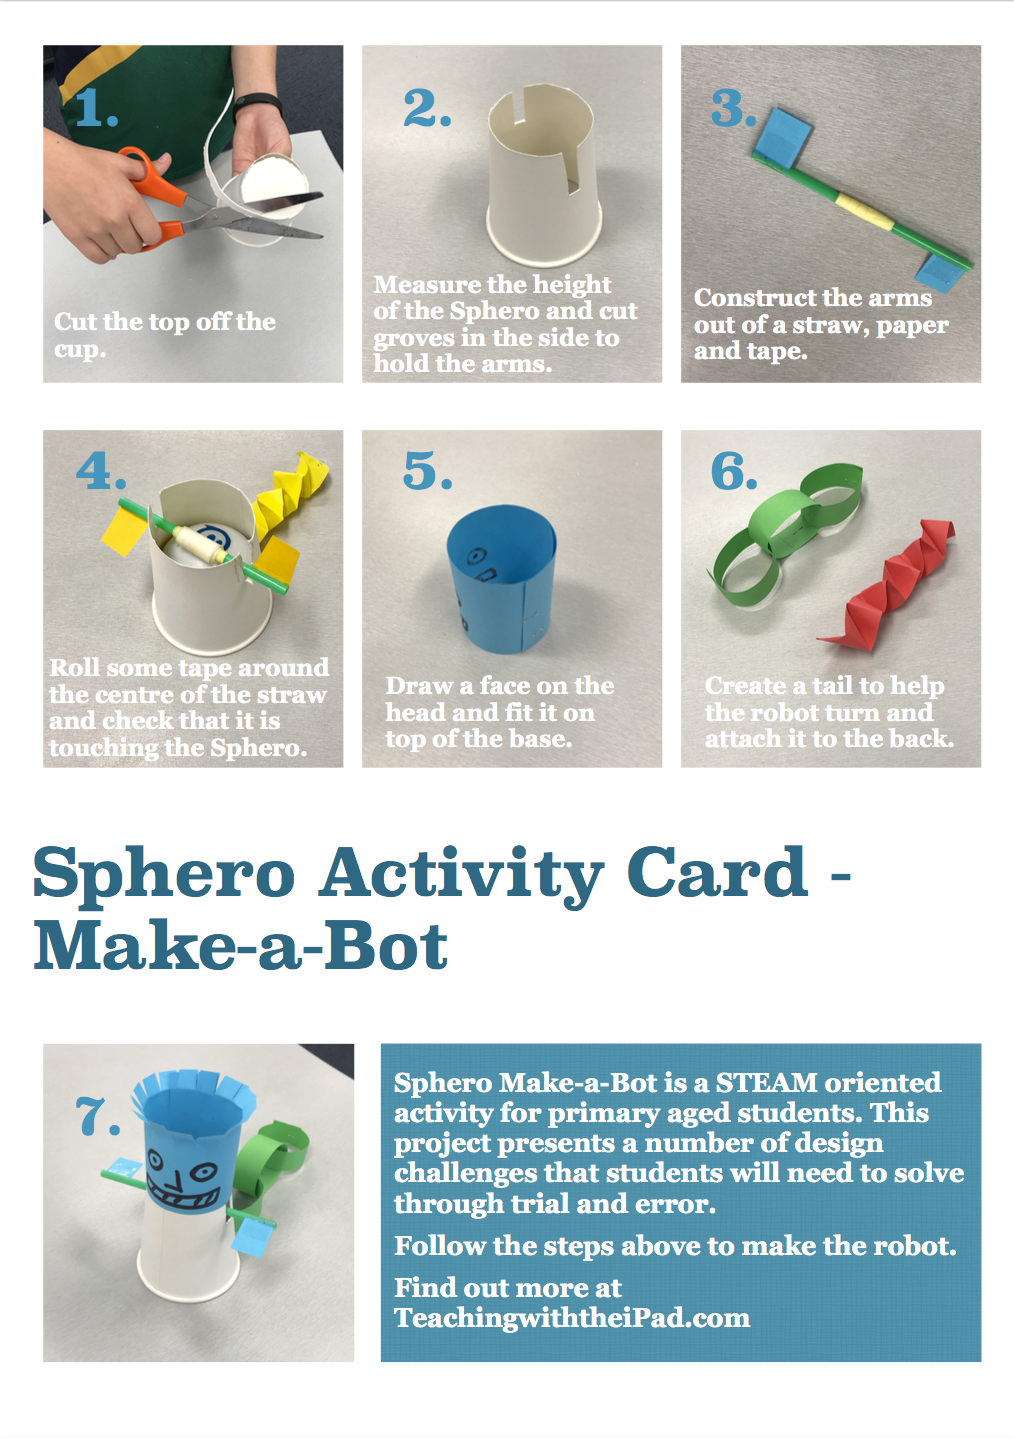 Sphero Construction Projects | Teaching with the iPad